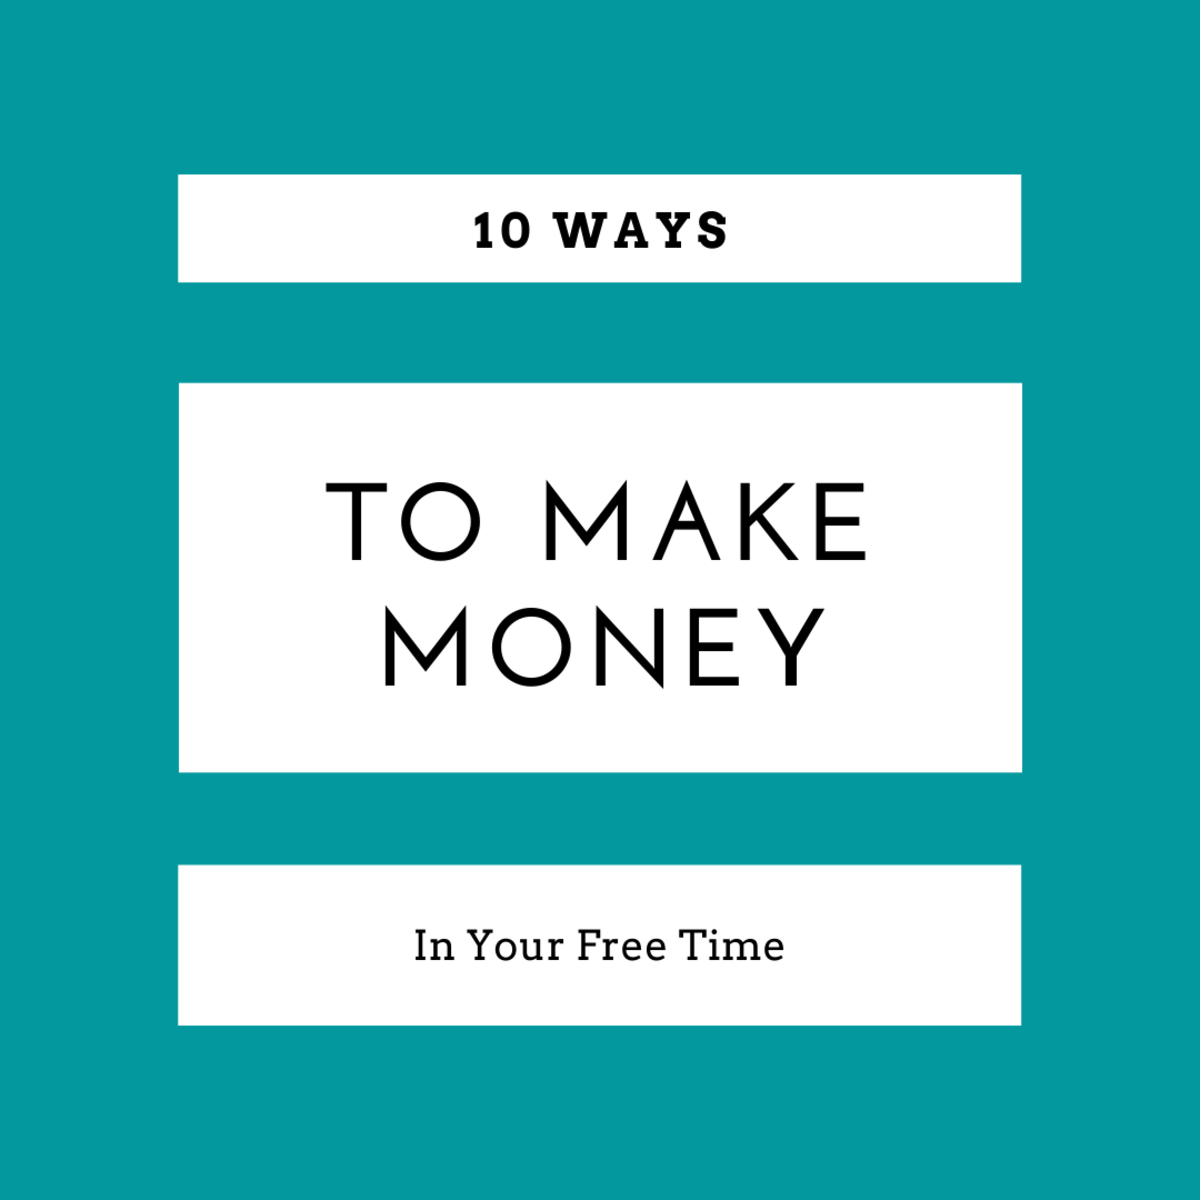 10 Great Ways to Make Money in Your Free Time